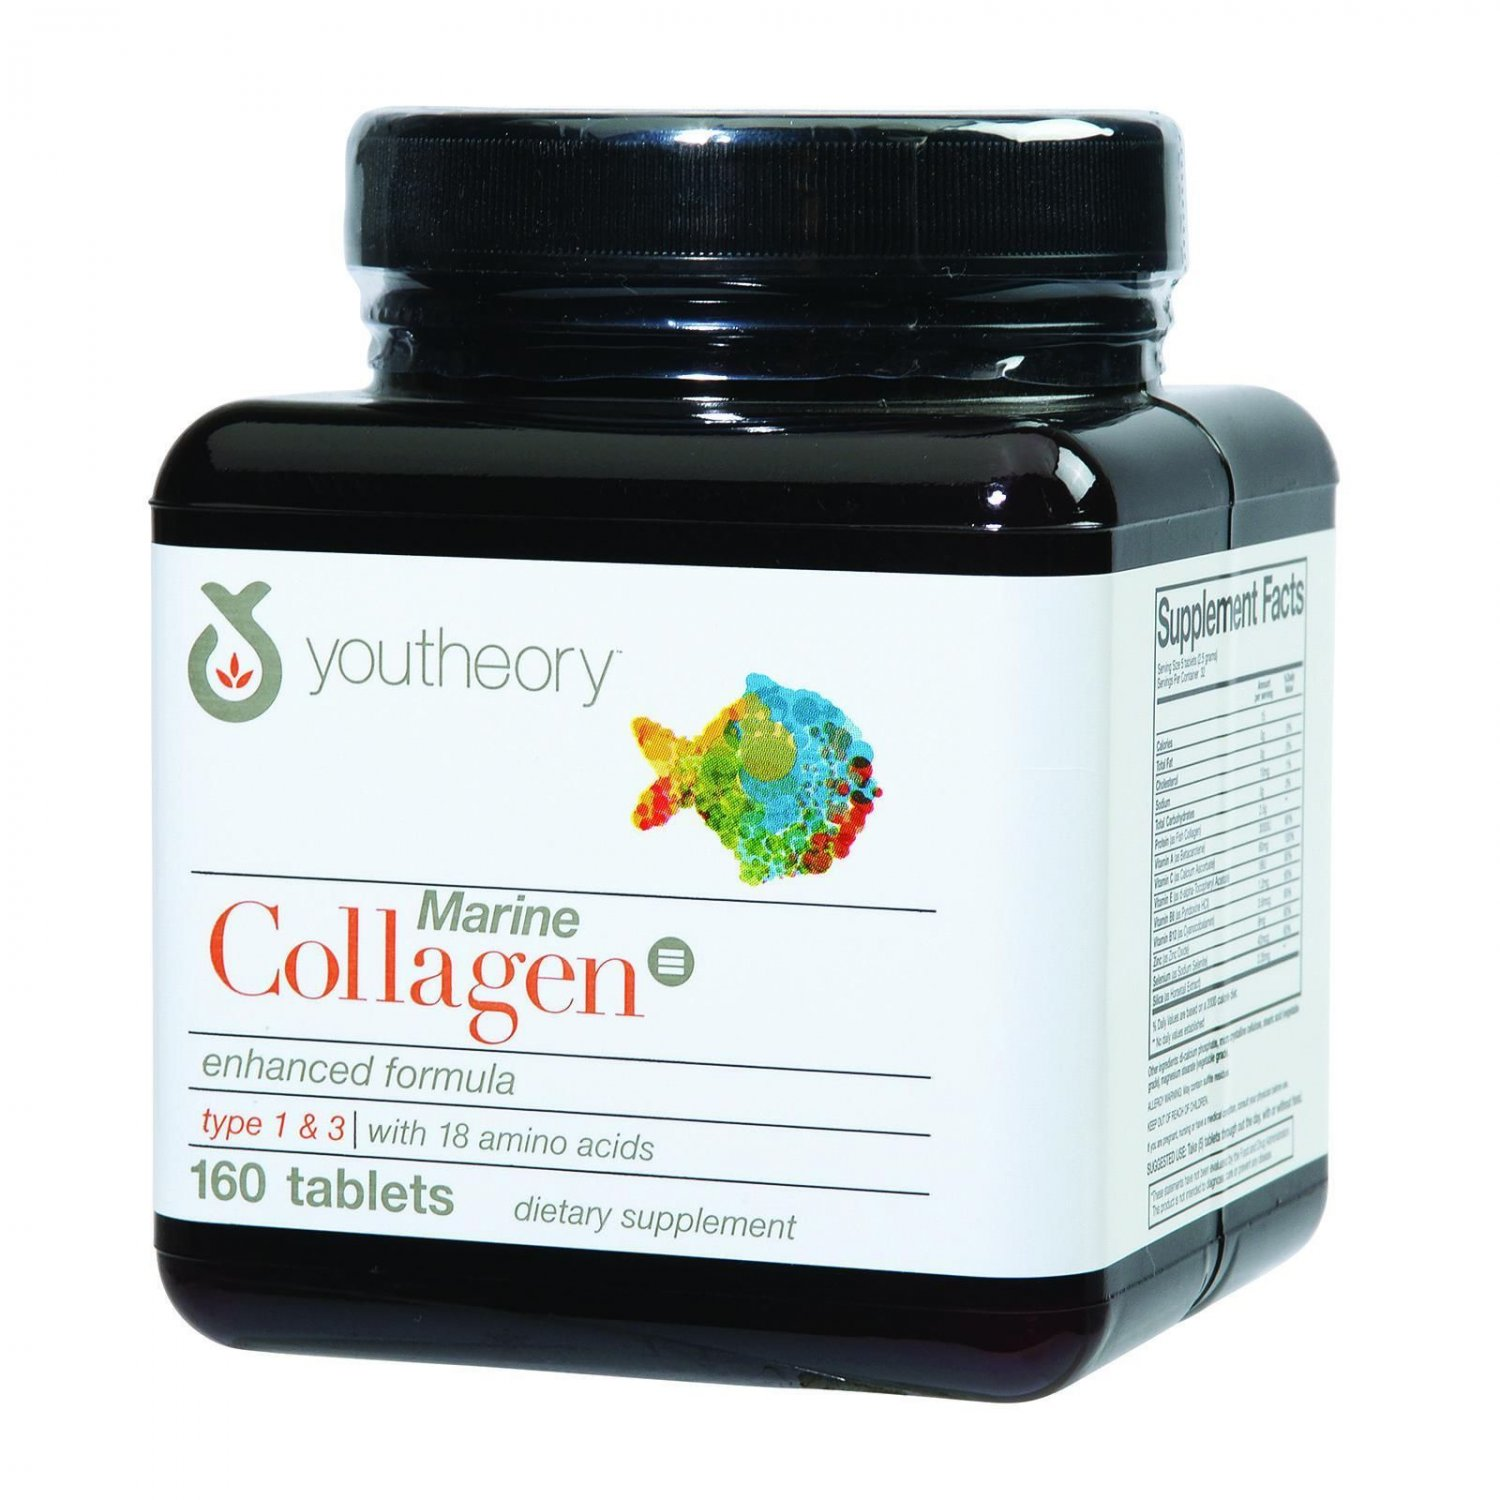 Youtheory Marine Collagen - Type 1 and 3 - Advanced Formula - 160 Tablets